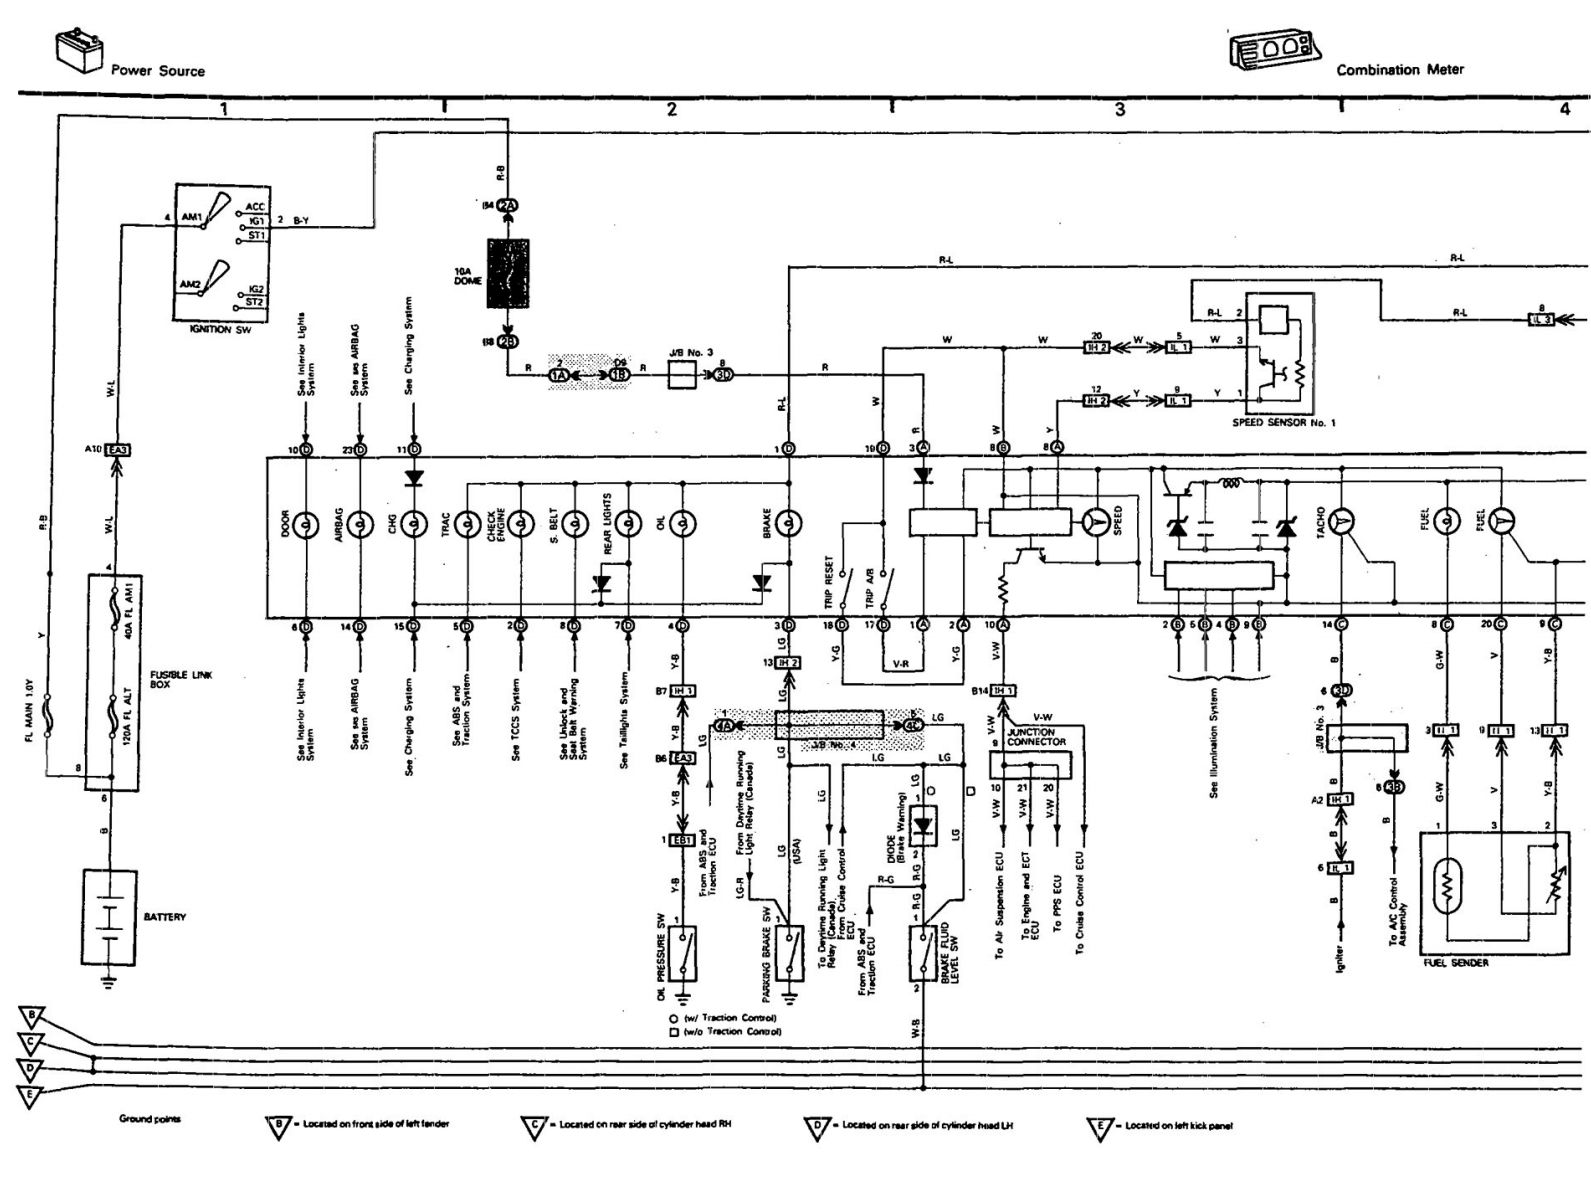 80 91_instrument_856d2d2151fa8541dc95b84608d7ff2a2006be42 wiring diagram for instrument cluster for 91 ls400 clublexus lexus gs 300 wiring diagram at gsmportal.co